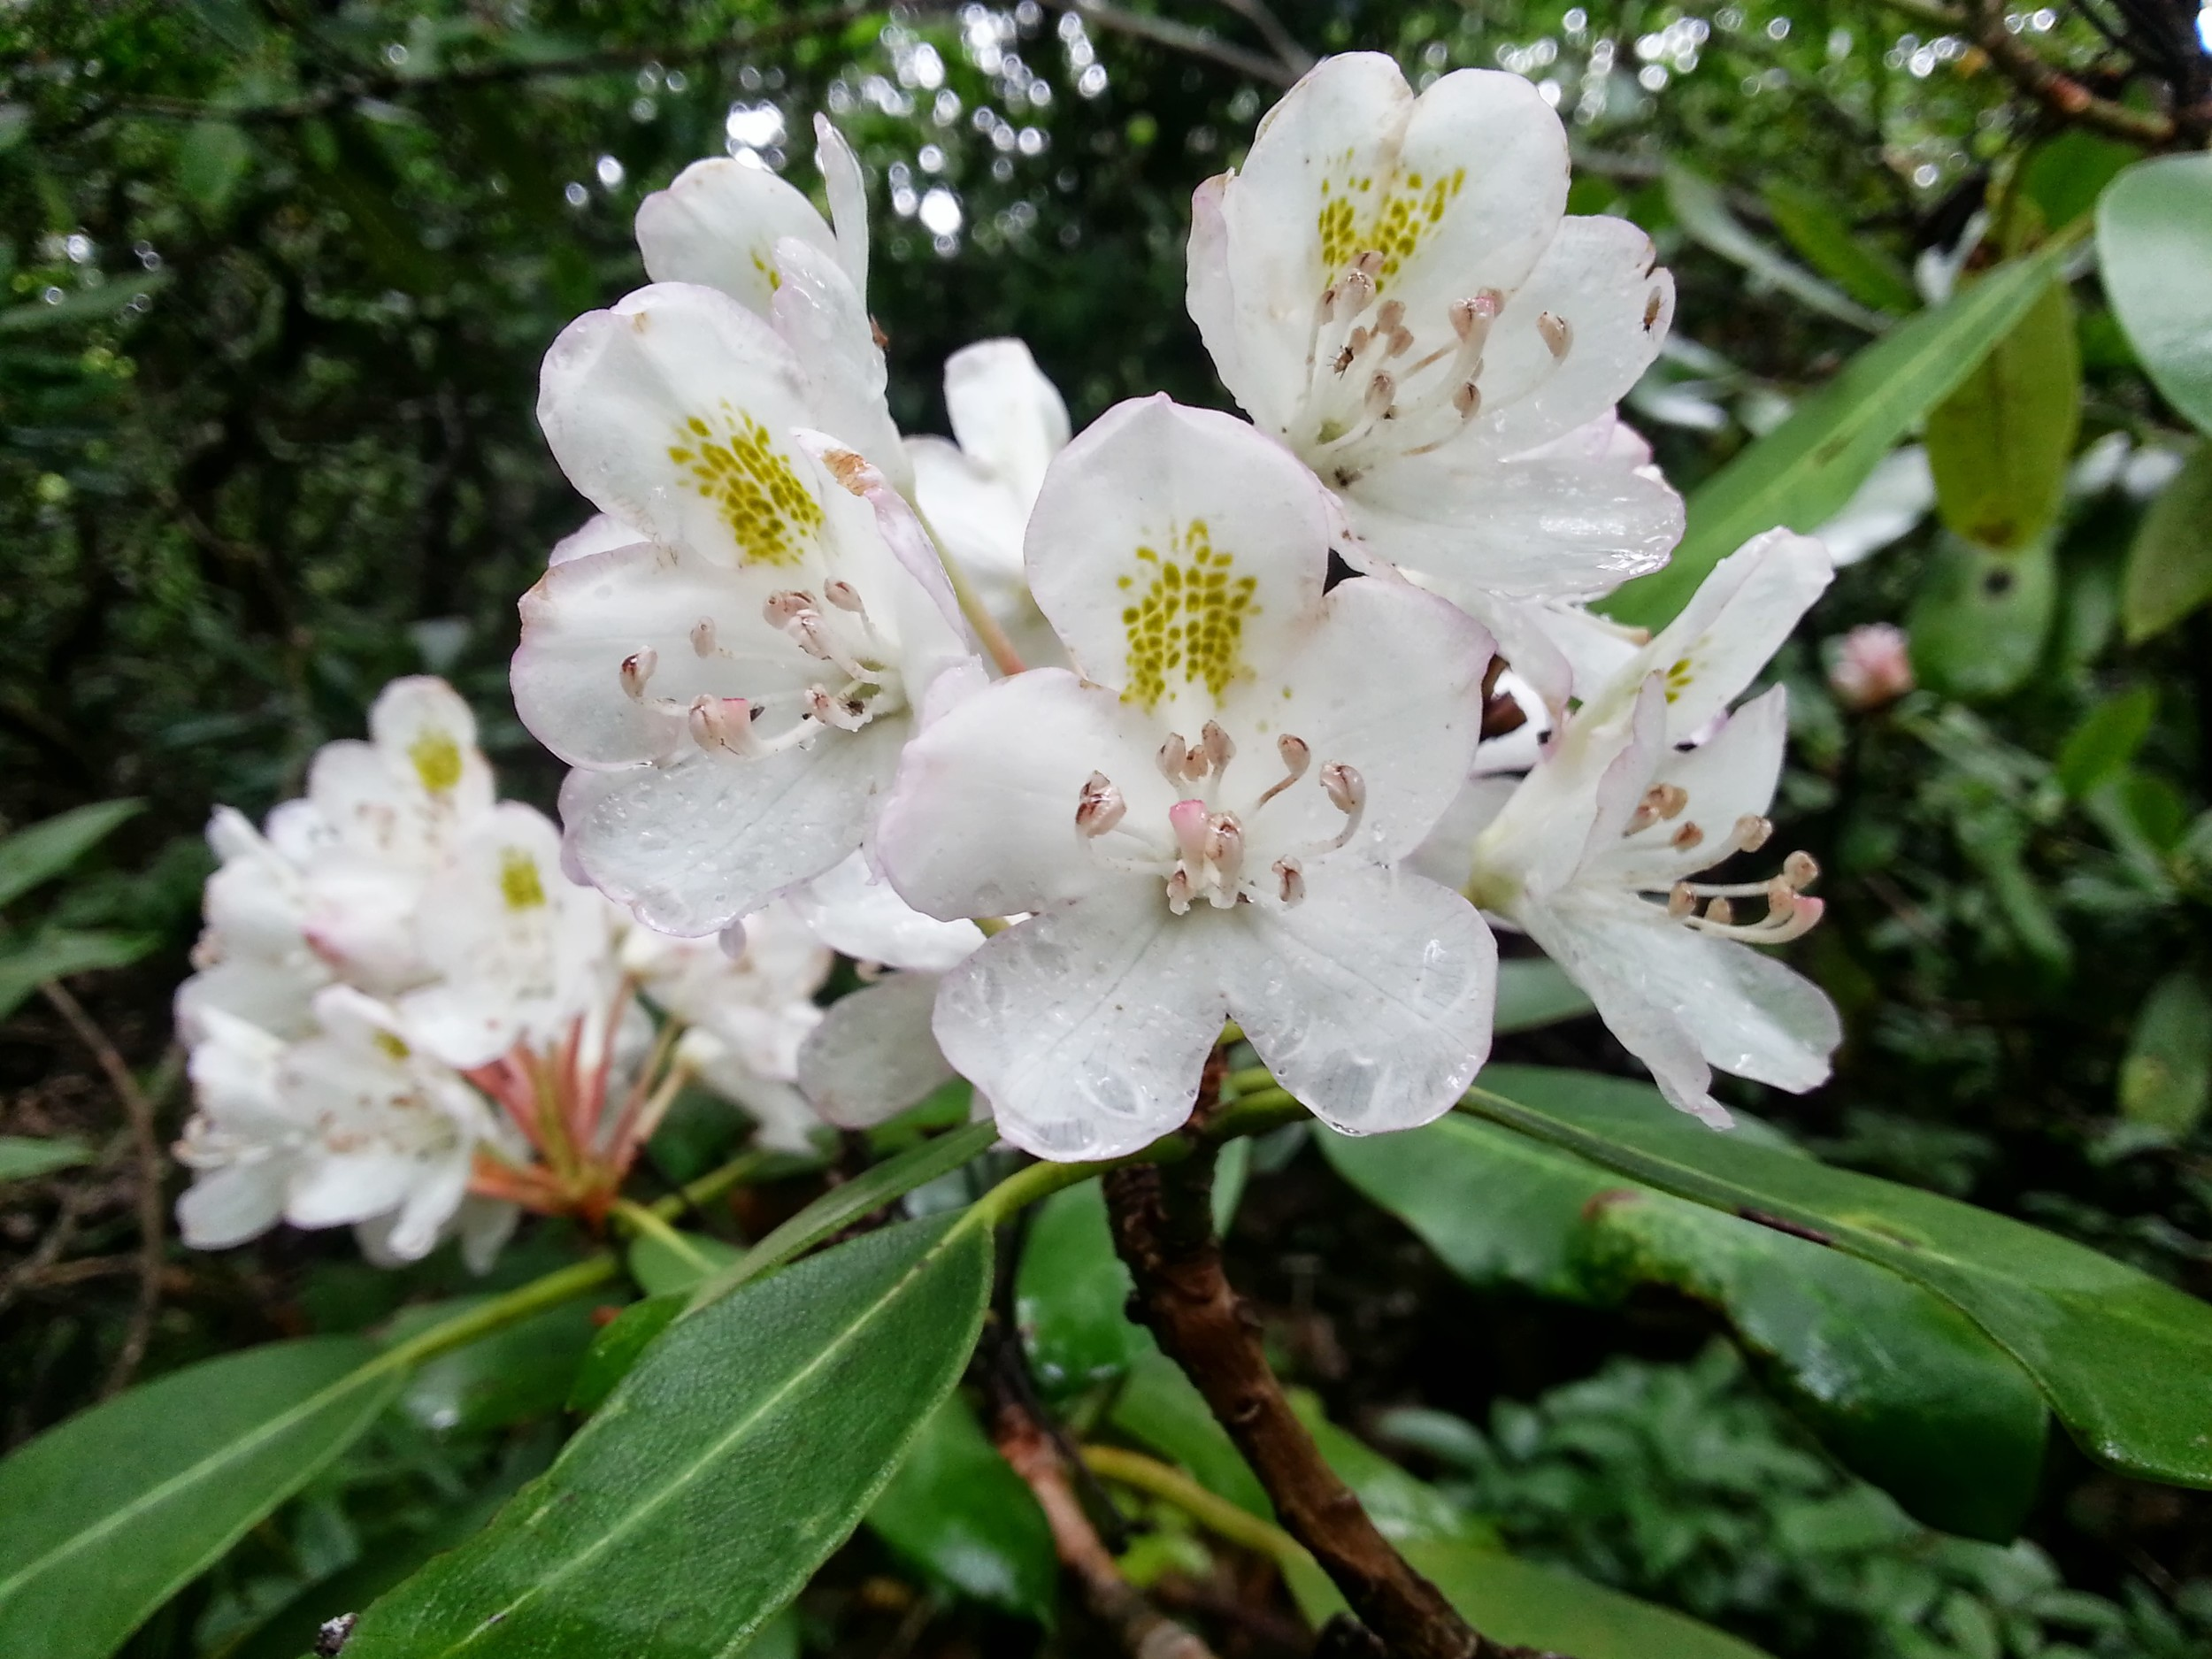 White Rhododendron along the trail